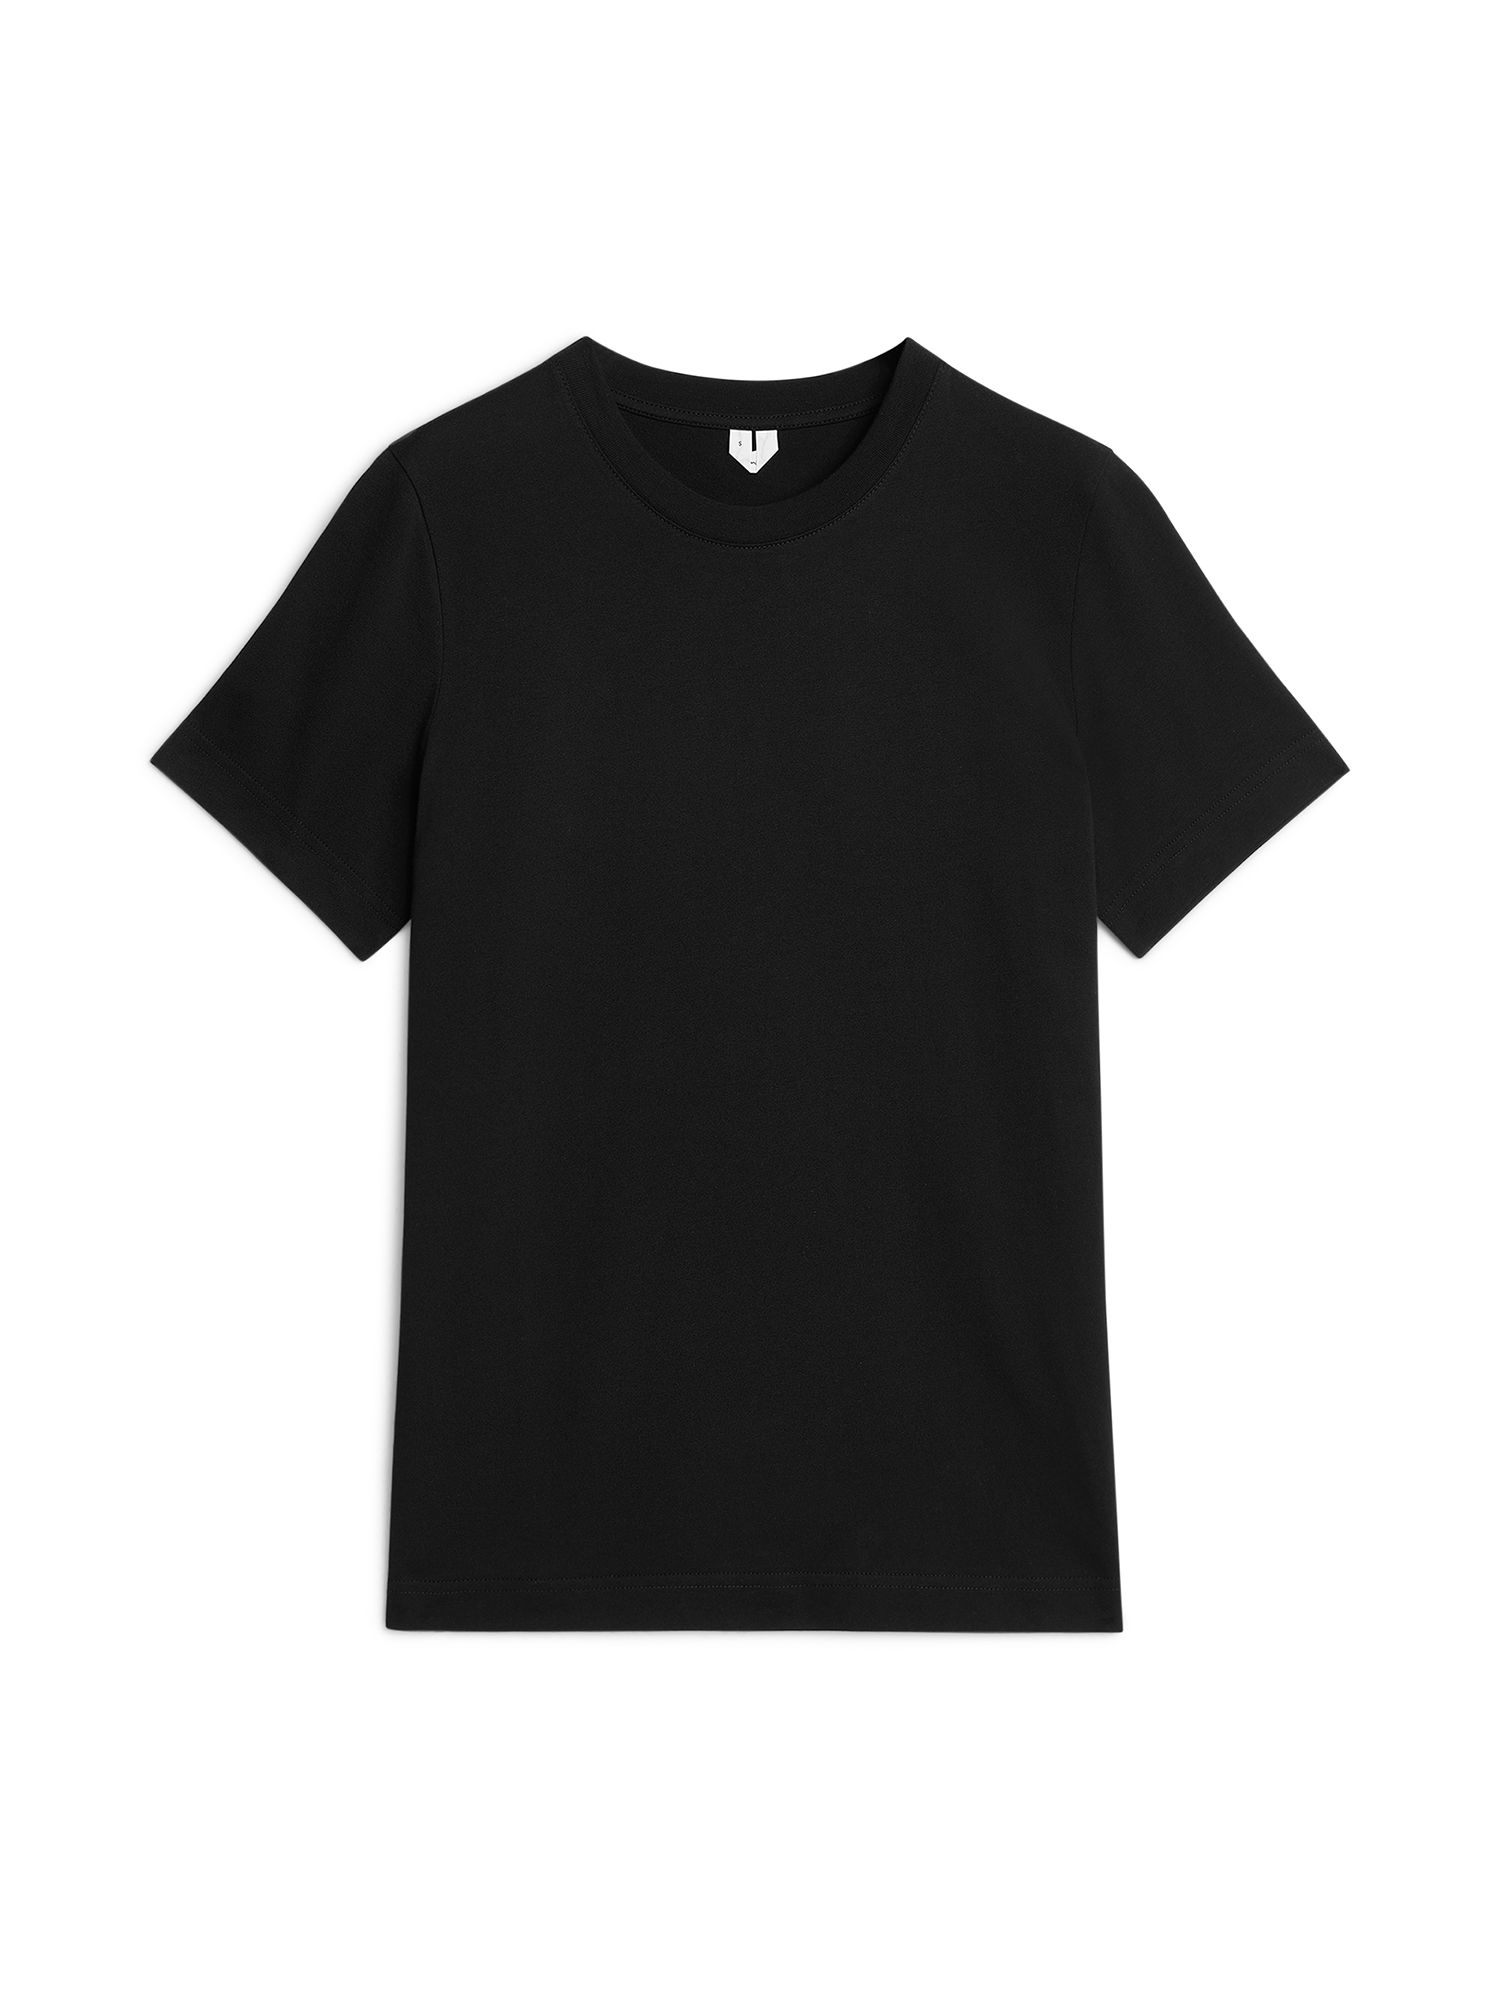 Fabric Swatch image of Arket crew-neck t-shirt in black